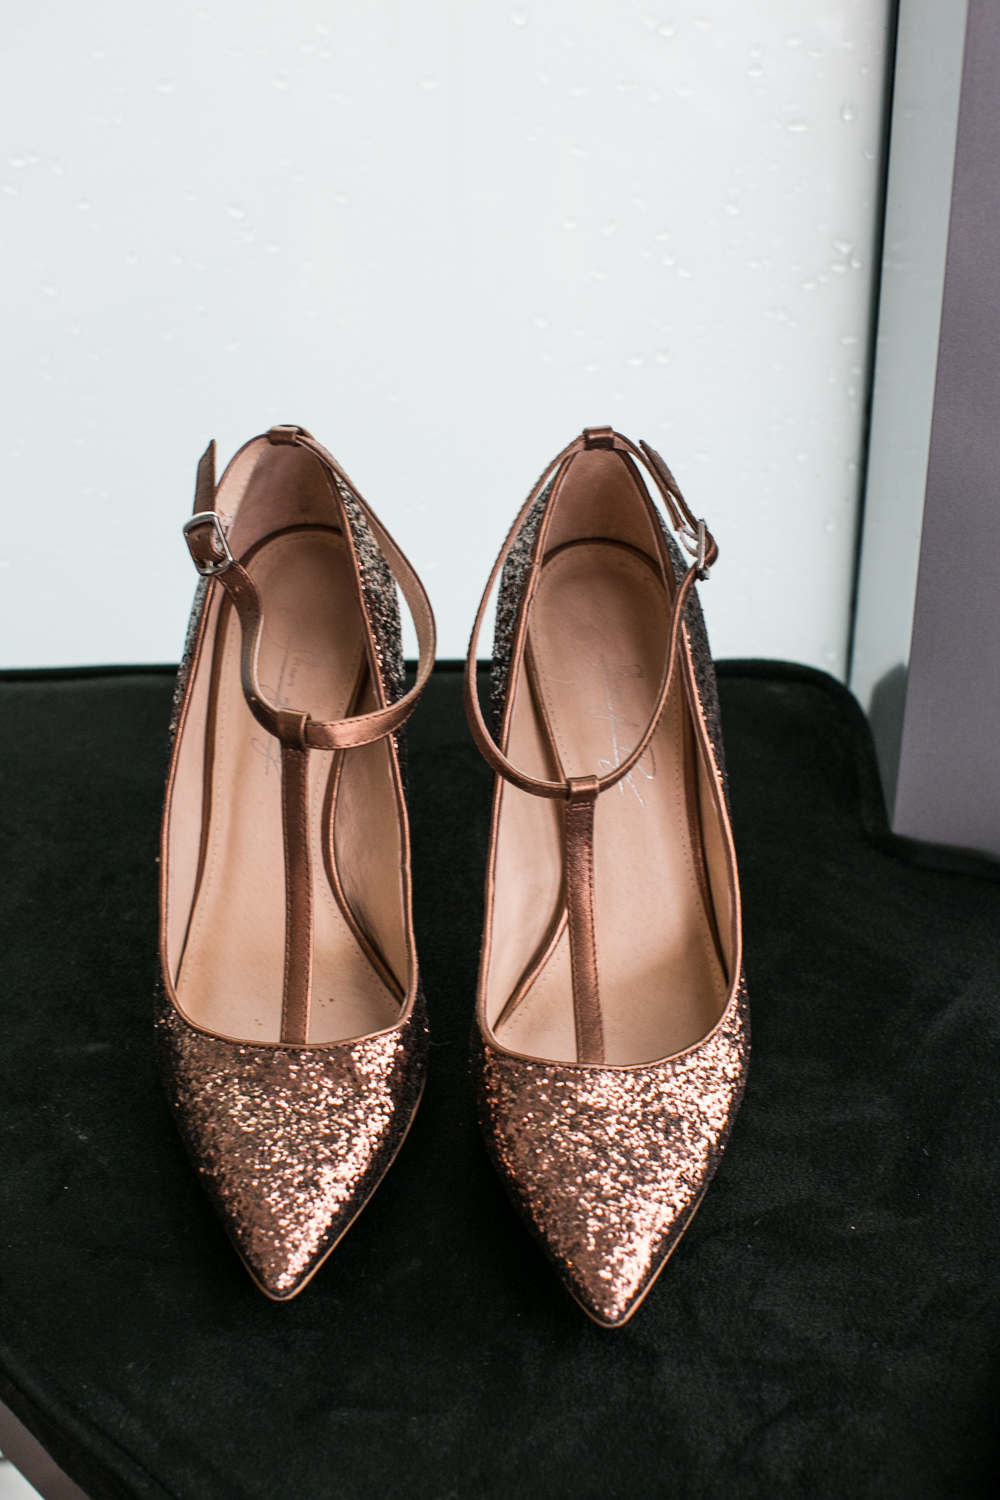 Shoes of Prey Wedding Shoes